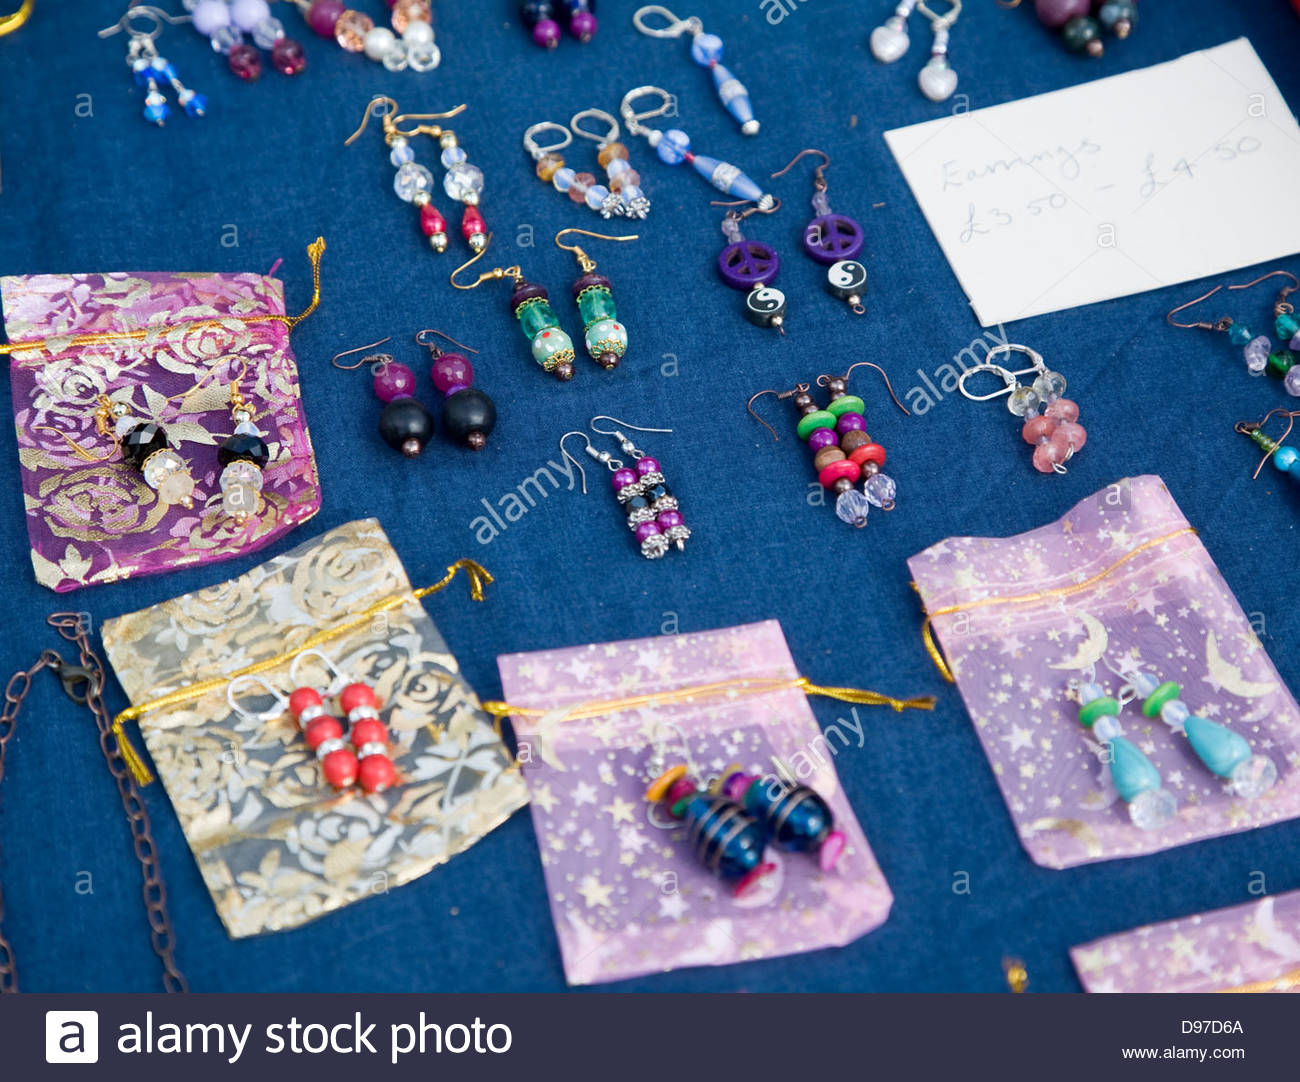 Display of handmade jewellery at country craft event, Shottisham, Suffolk, England - Stock Image